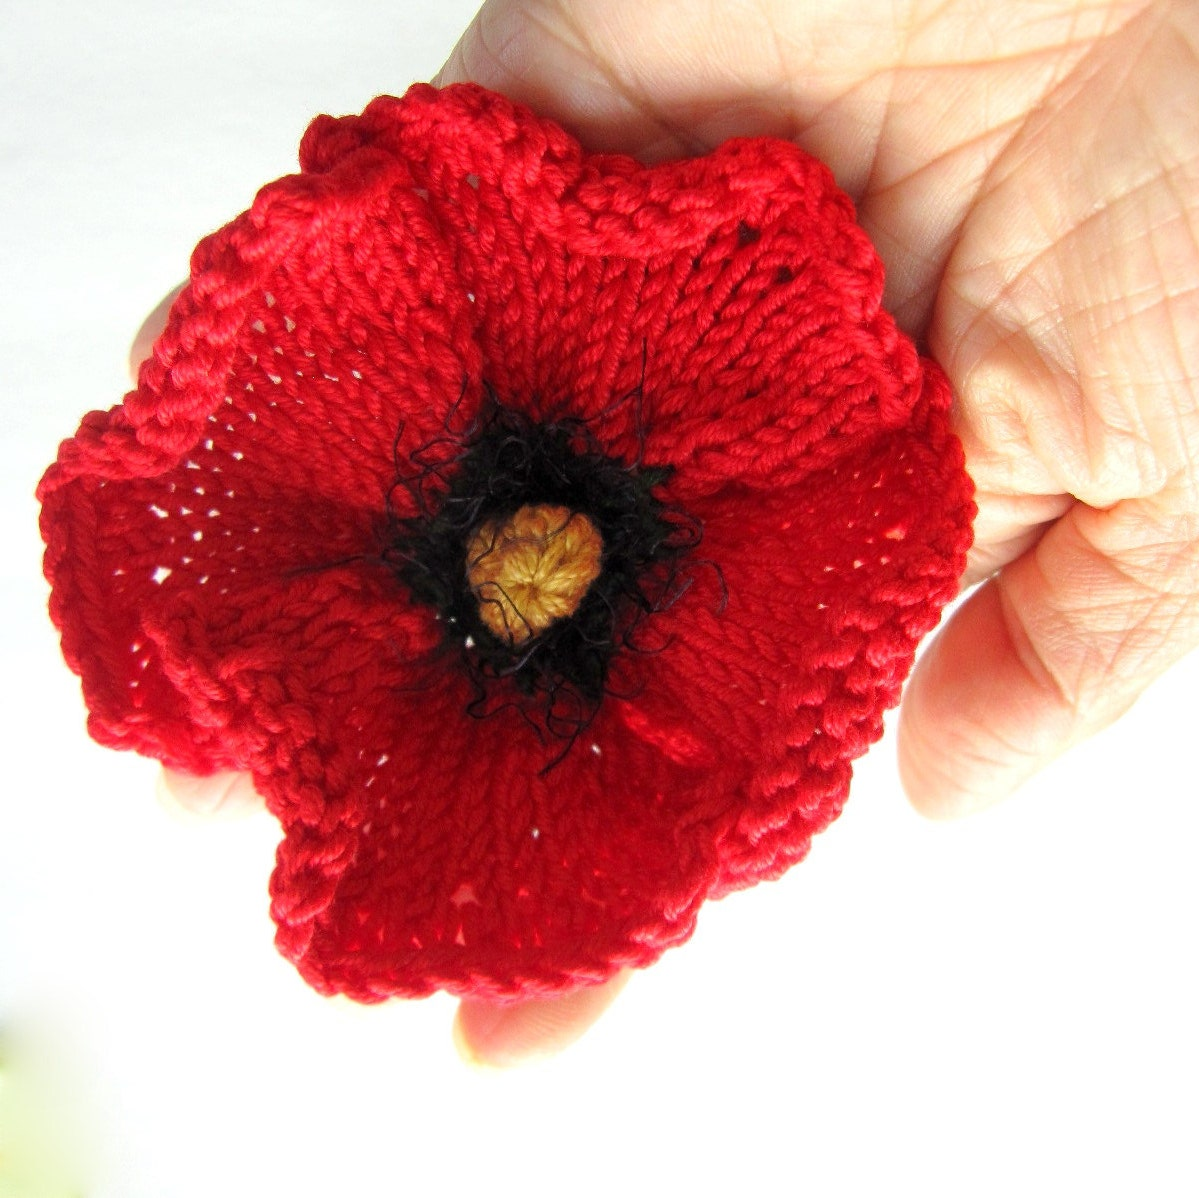 Knitting Pattern For Poppy Flowers : Knit Flower Instant Download PDF Pattern Poppy Flower